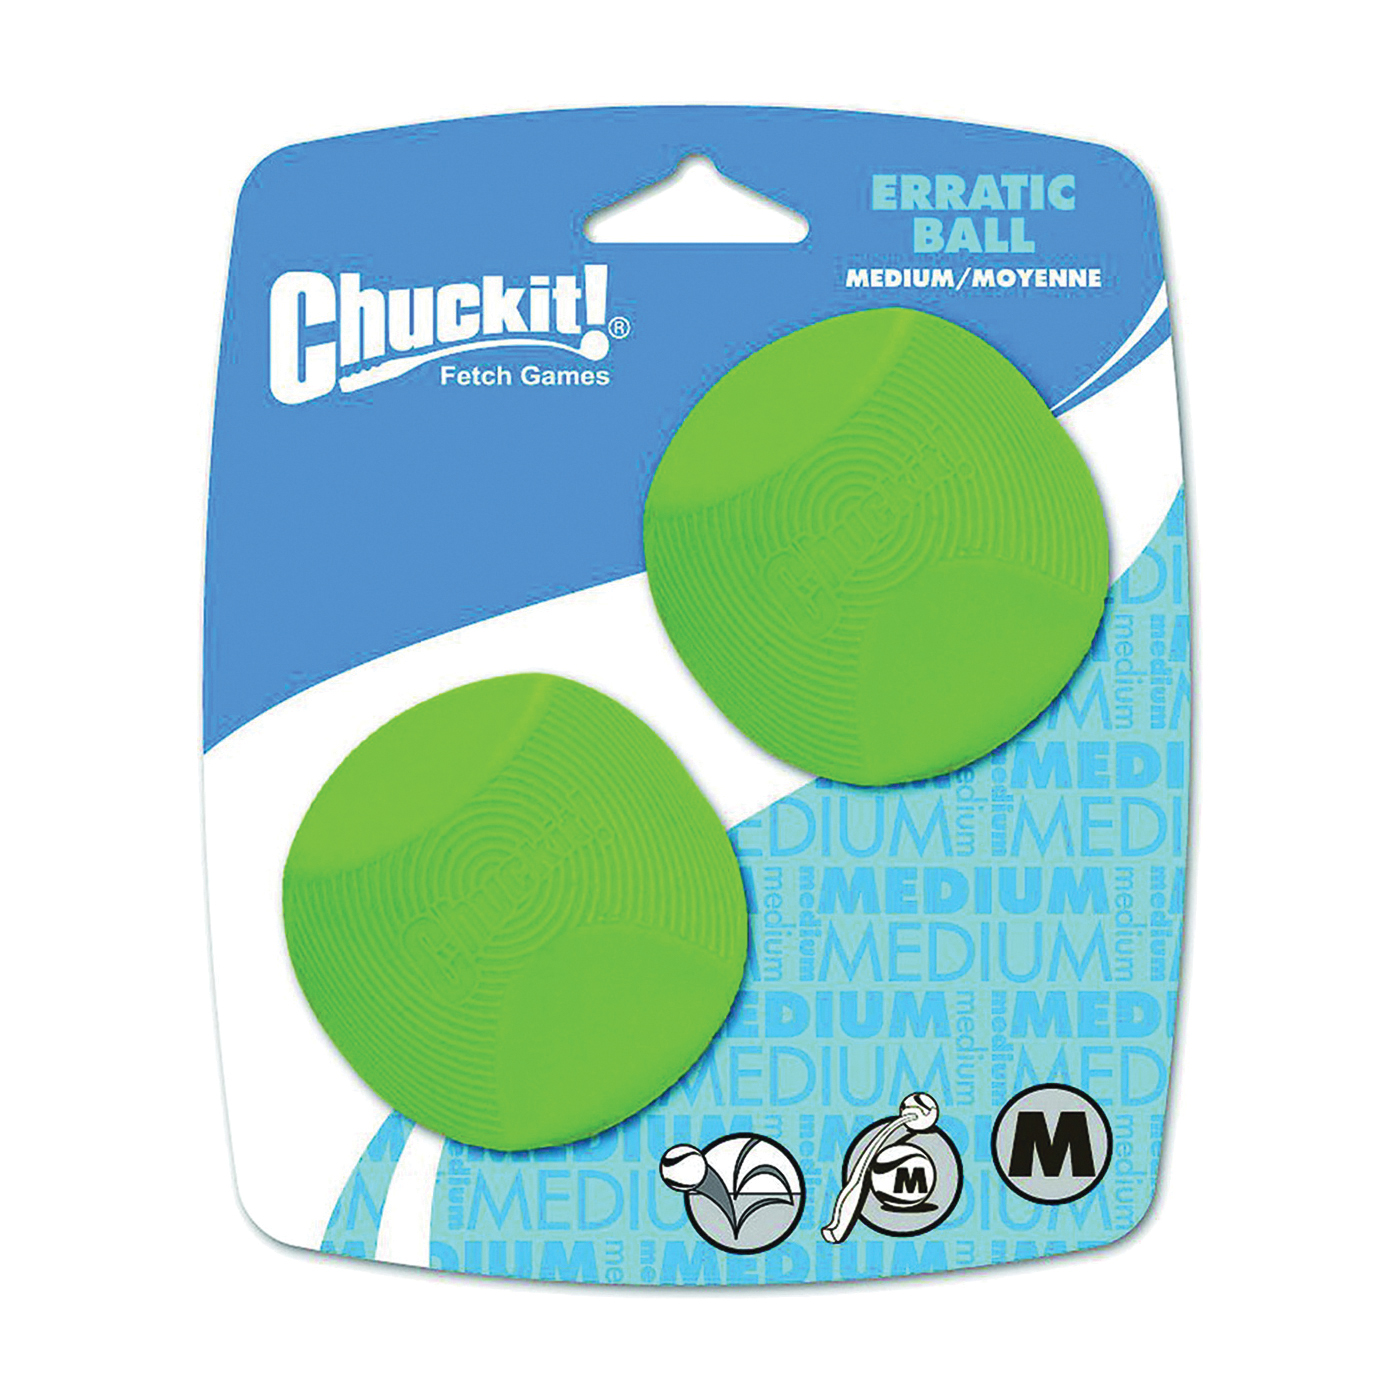 Picture of Chuckit! 20120 Dog Toy Ball, M, Erratic Toy, Natural Rubber, Green